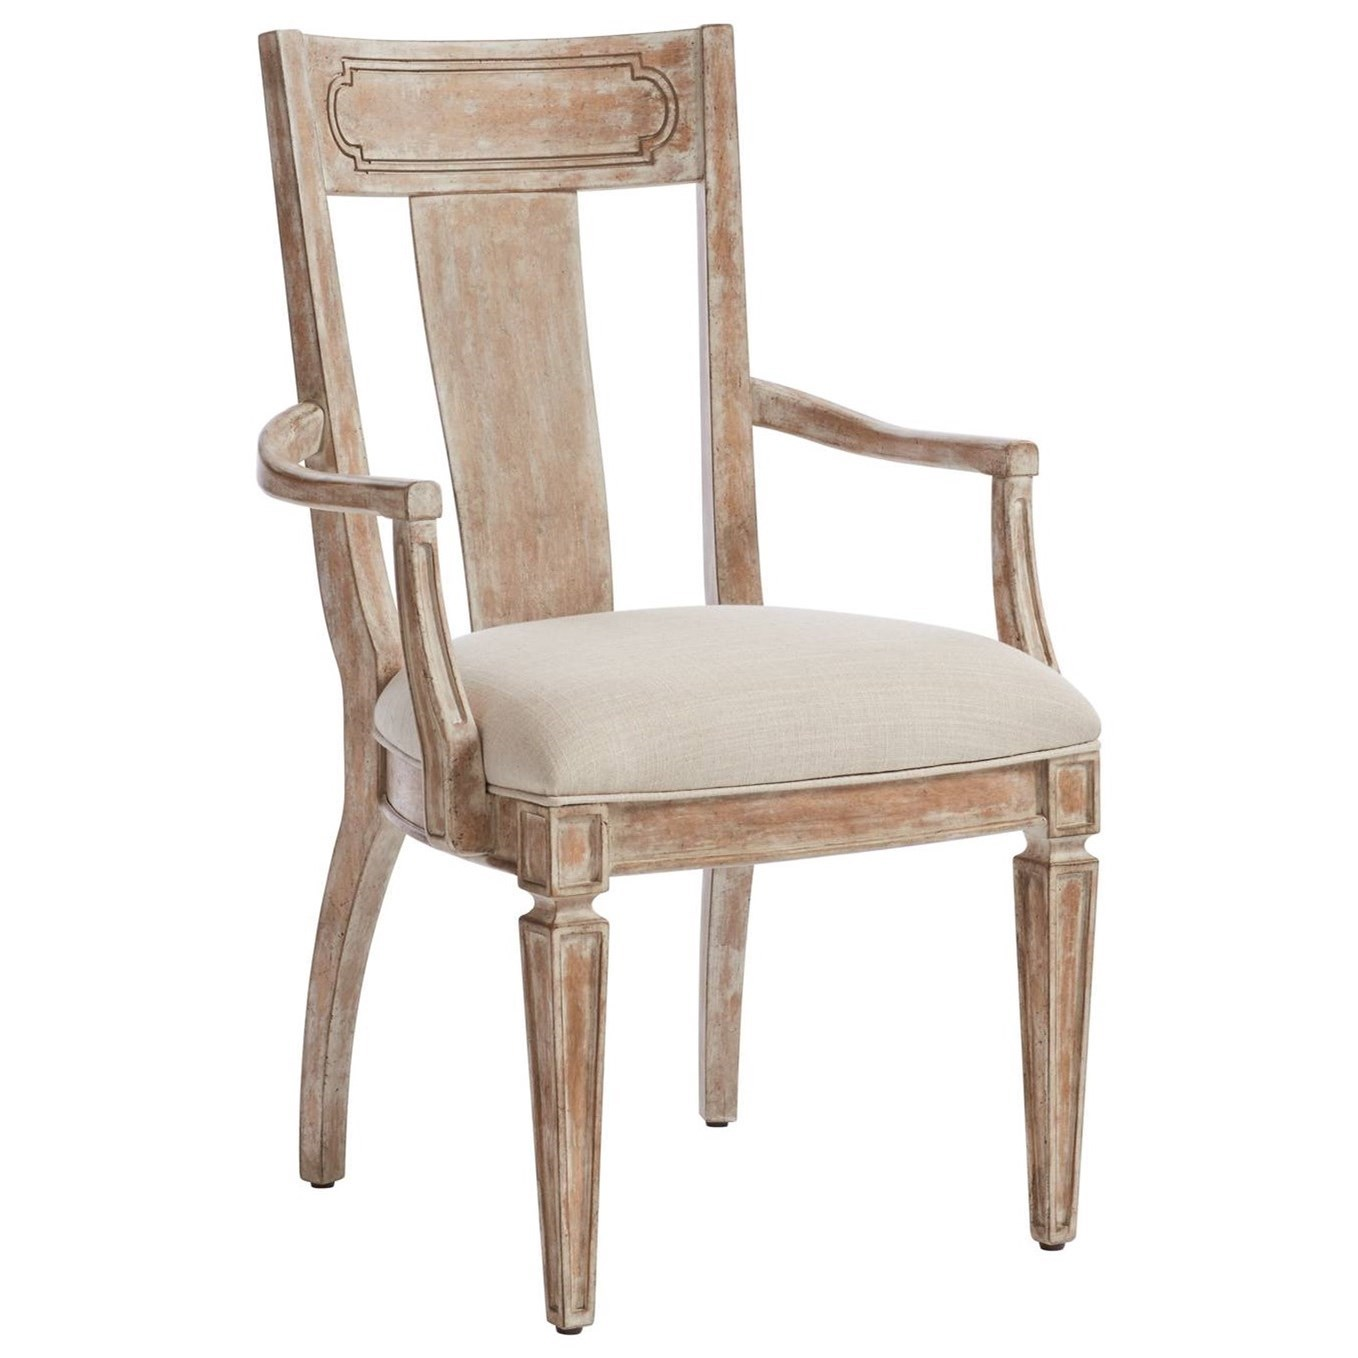 Stanley furniture juniper dell 615 61 75 cottage style for Cottage style kitchen chairs